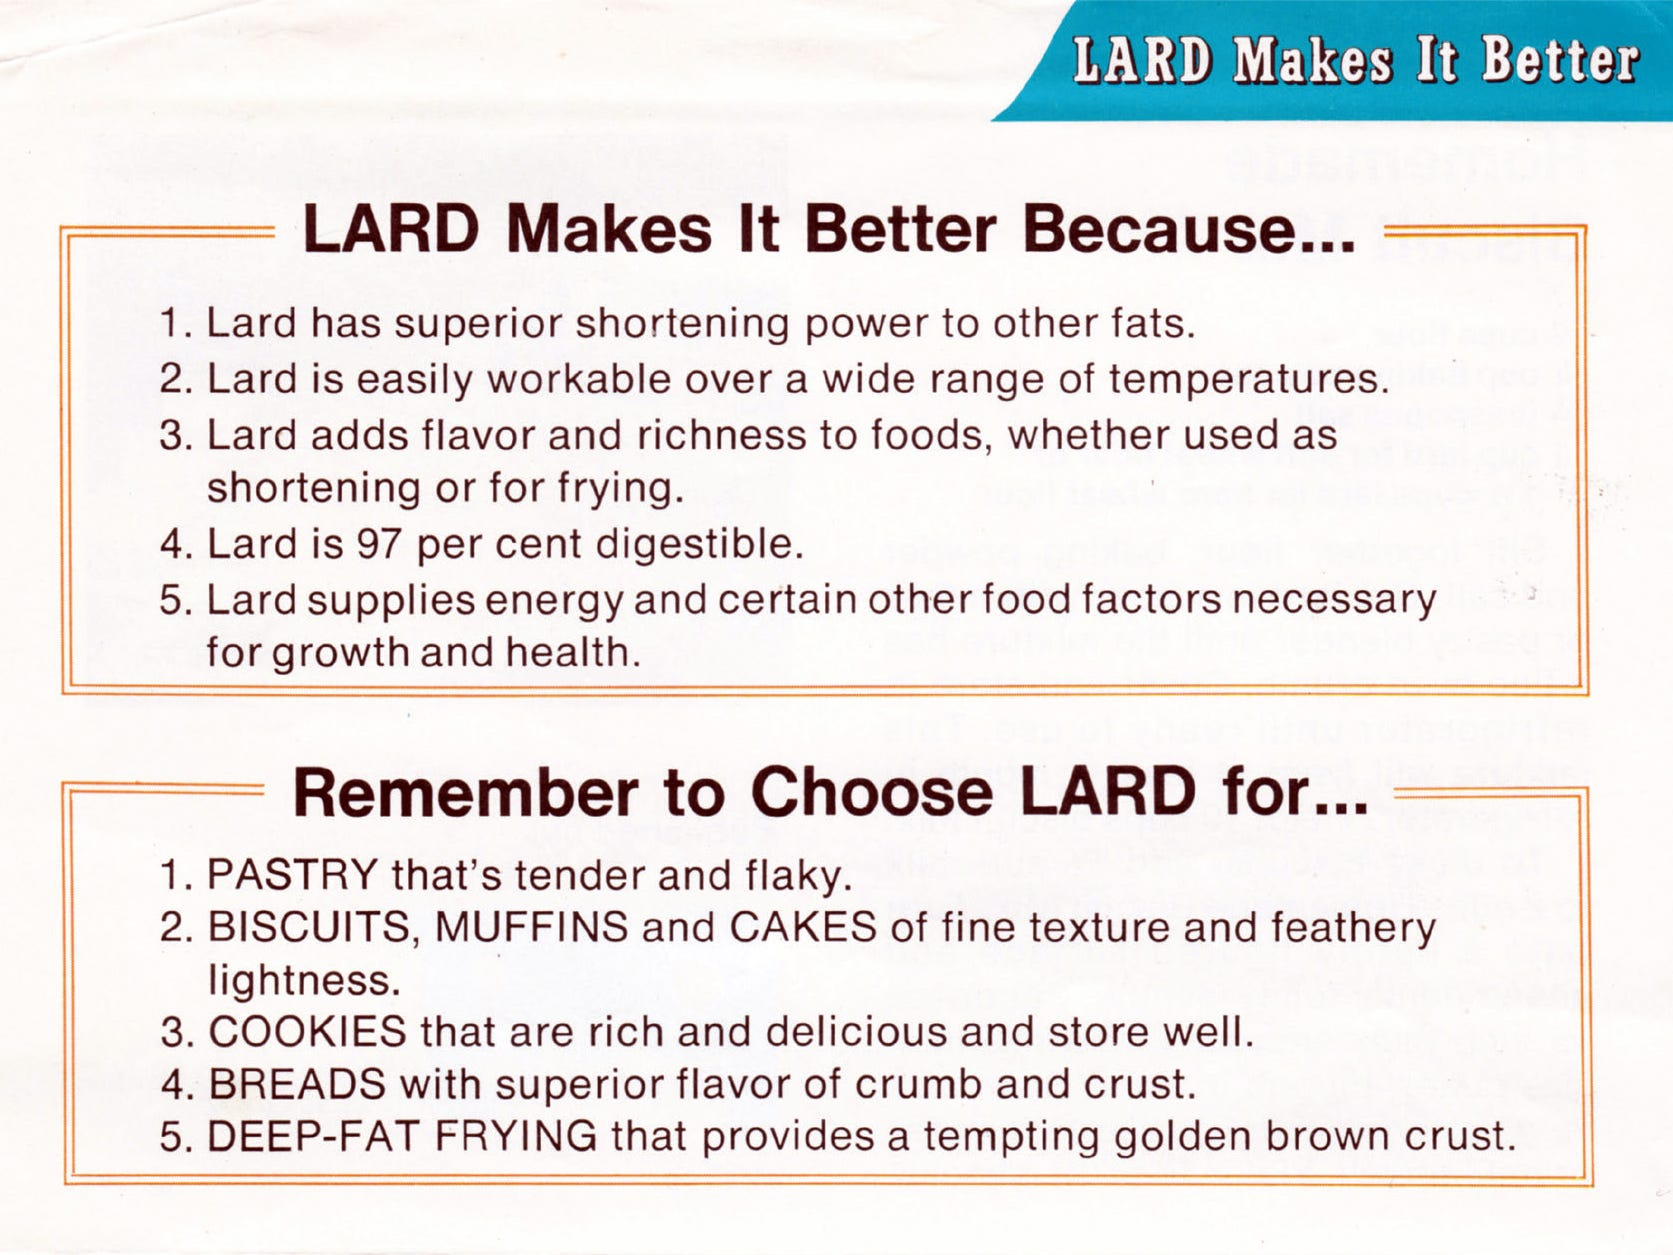 """Lard makes it better"" was the slogan for this 1975 Pork Industry Group campaign, reacting to the fact that vegetable shortening and oils had replaced lard as the preferred fat."